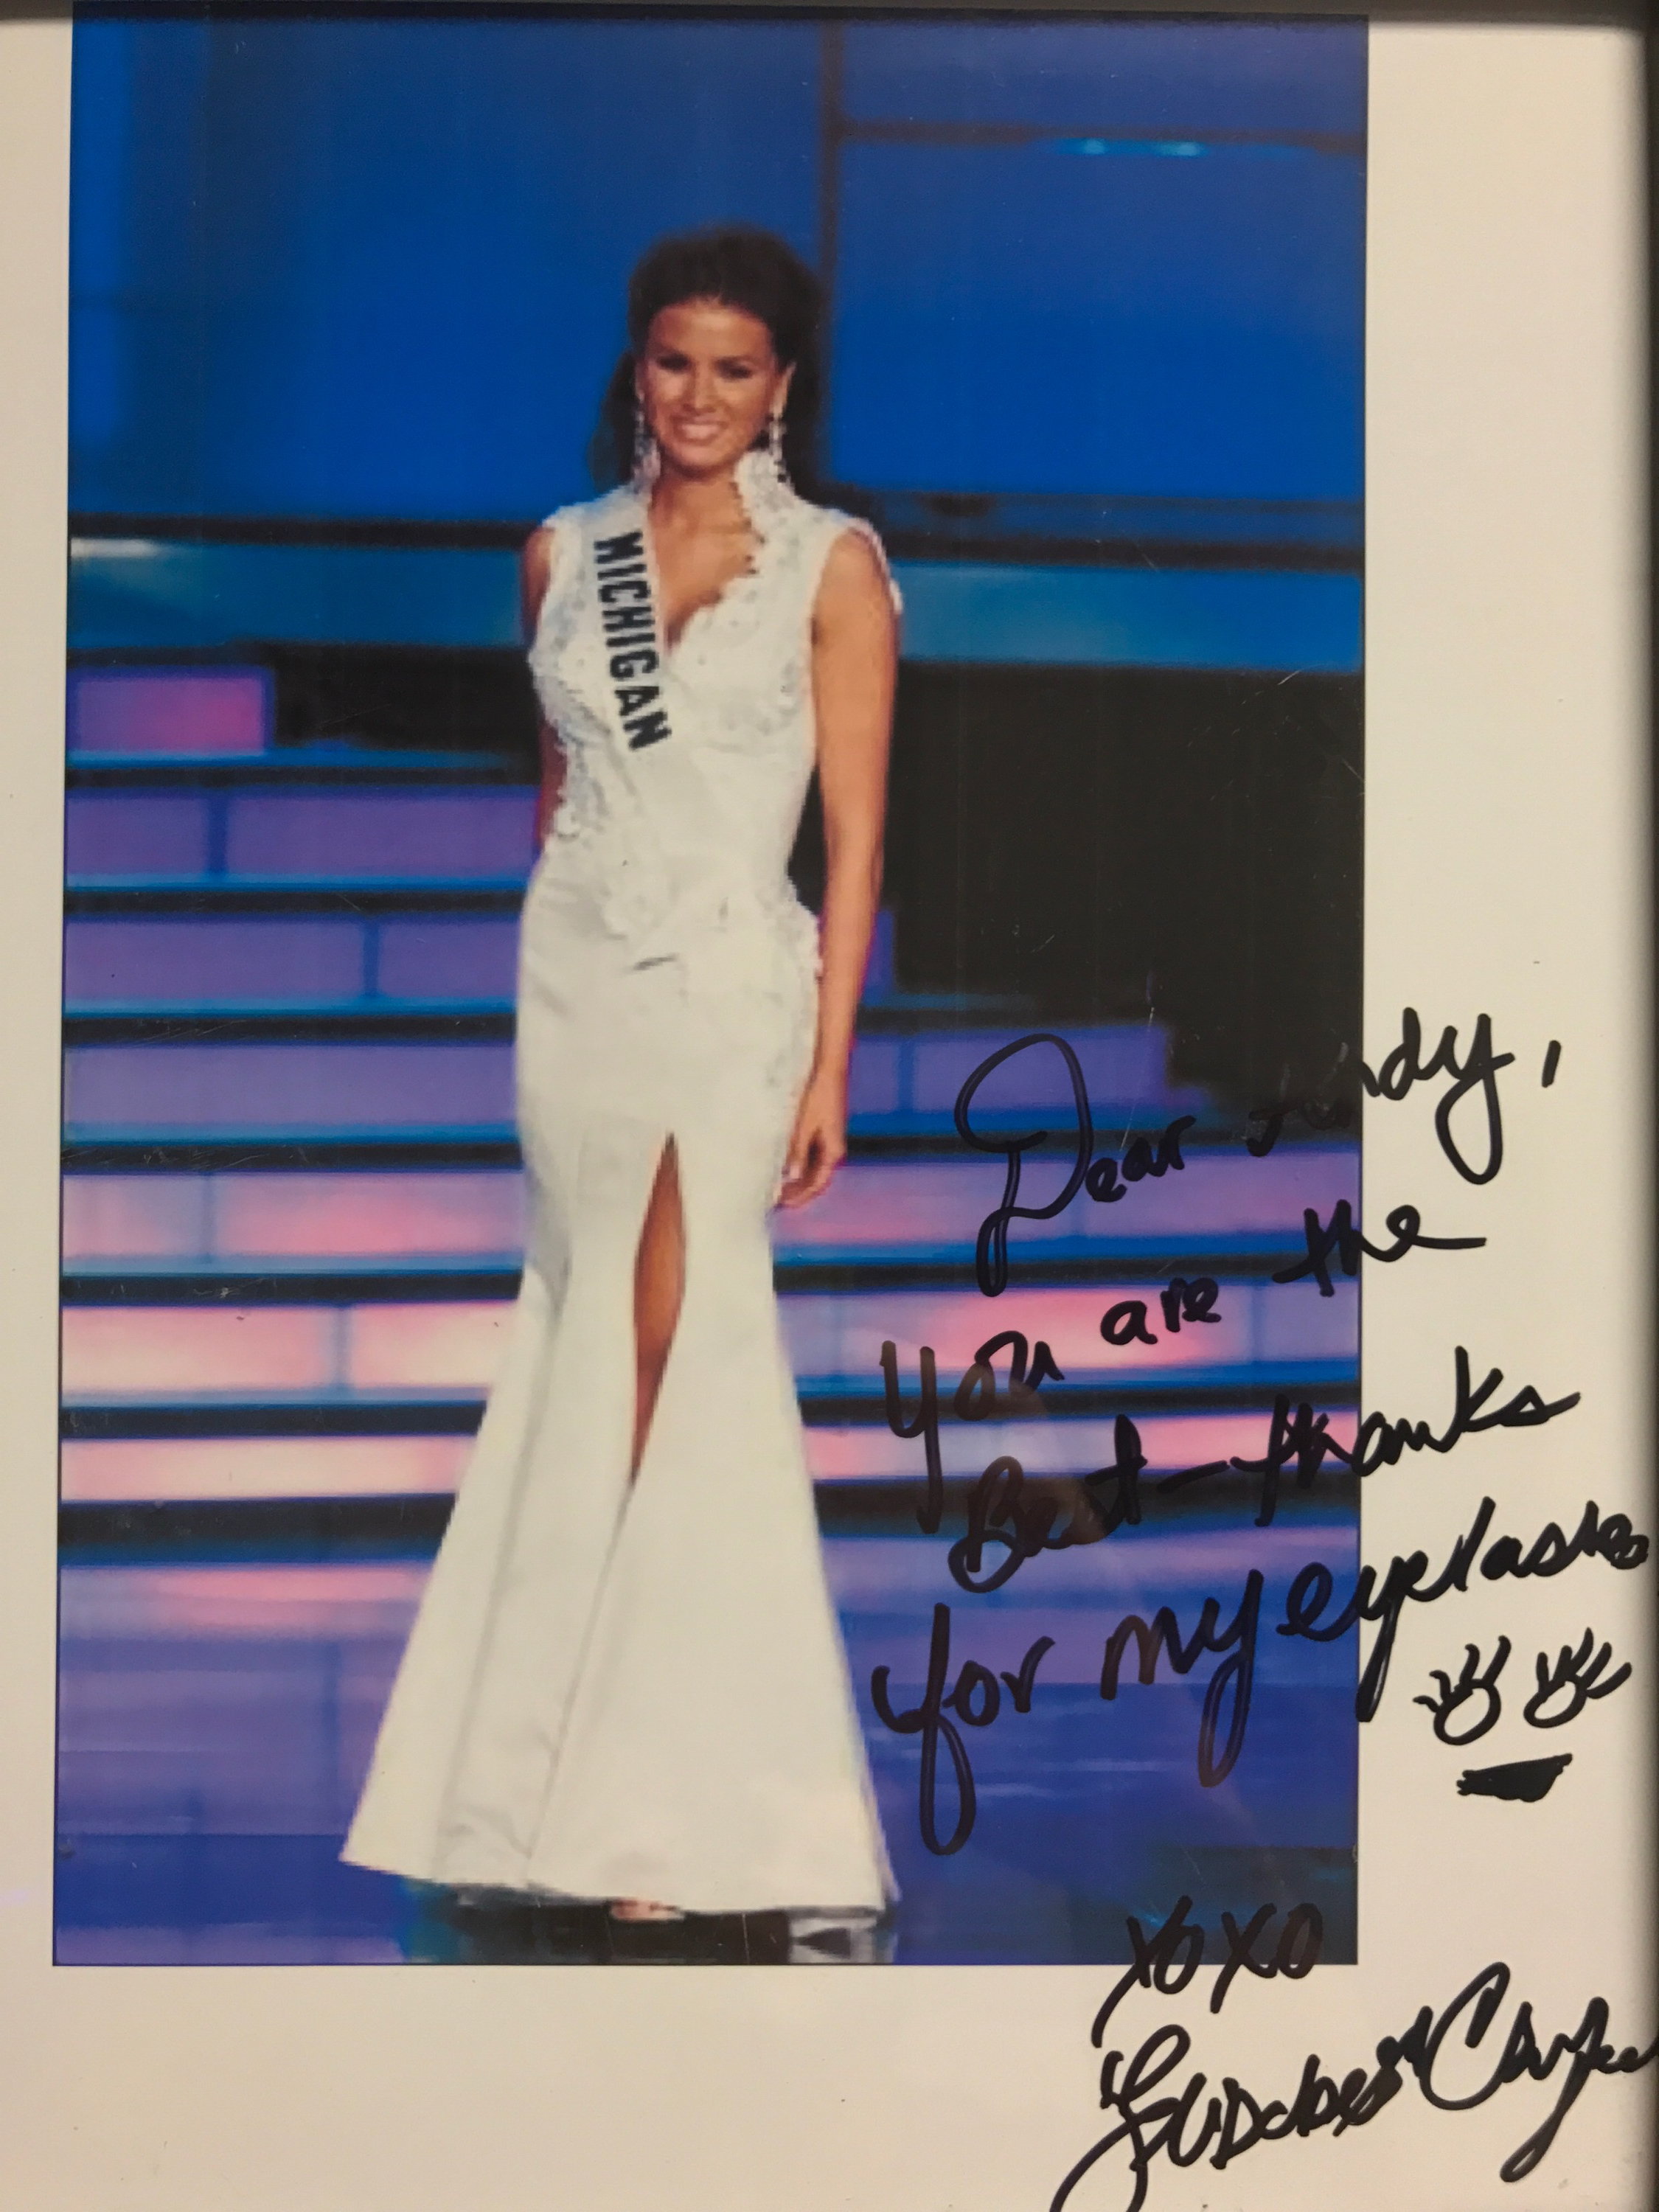 Miss Michigan USA